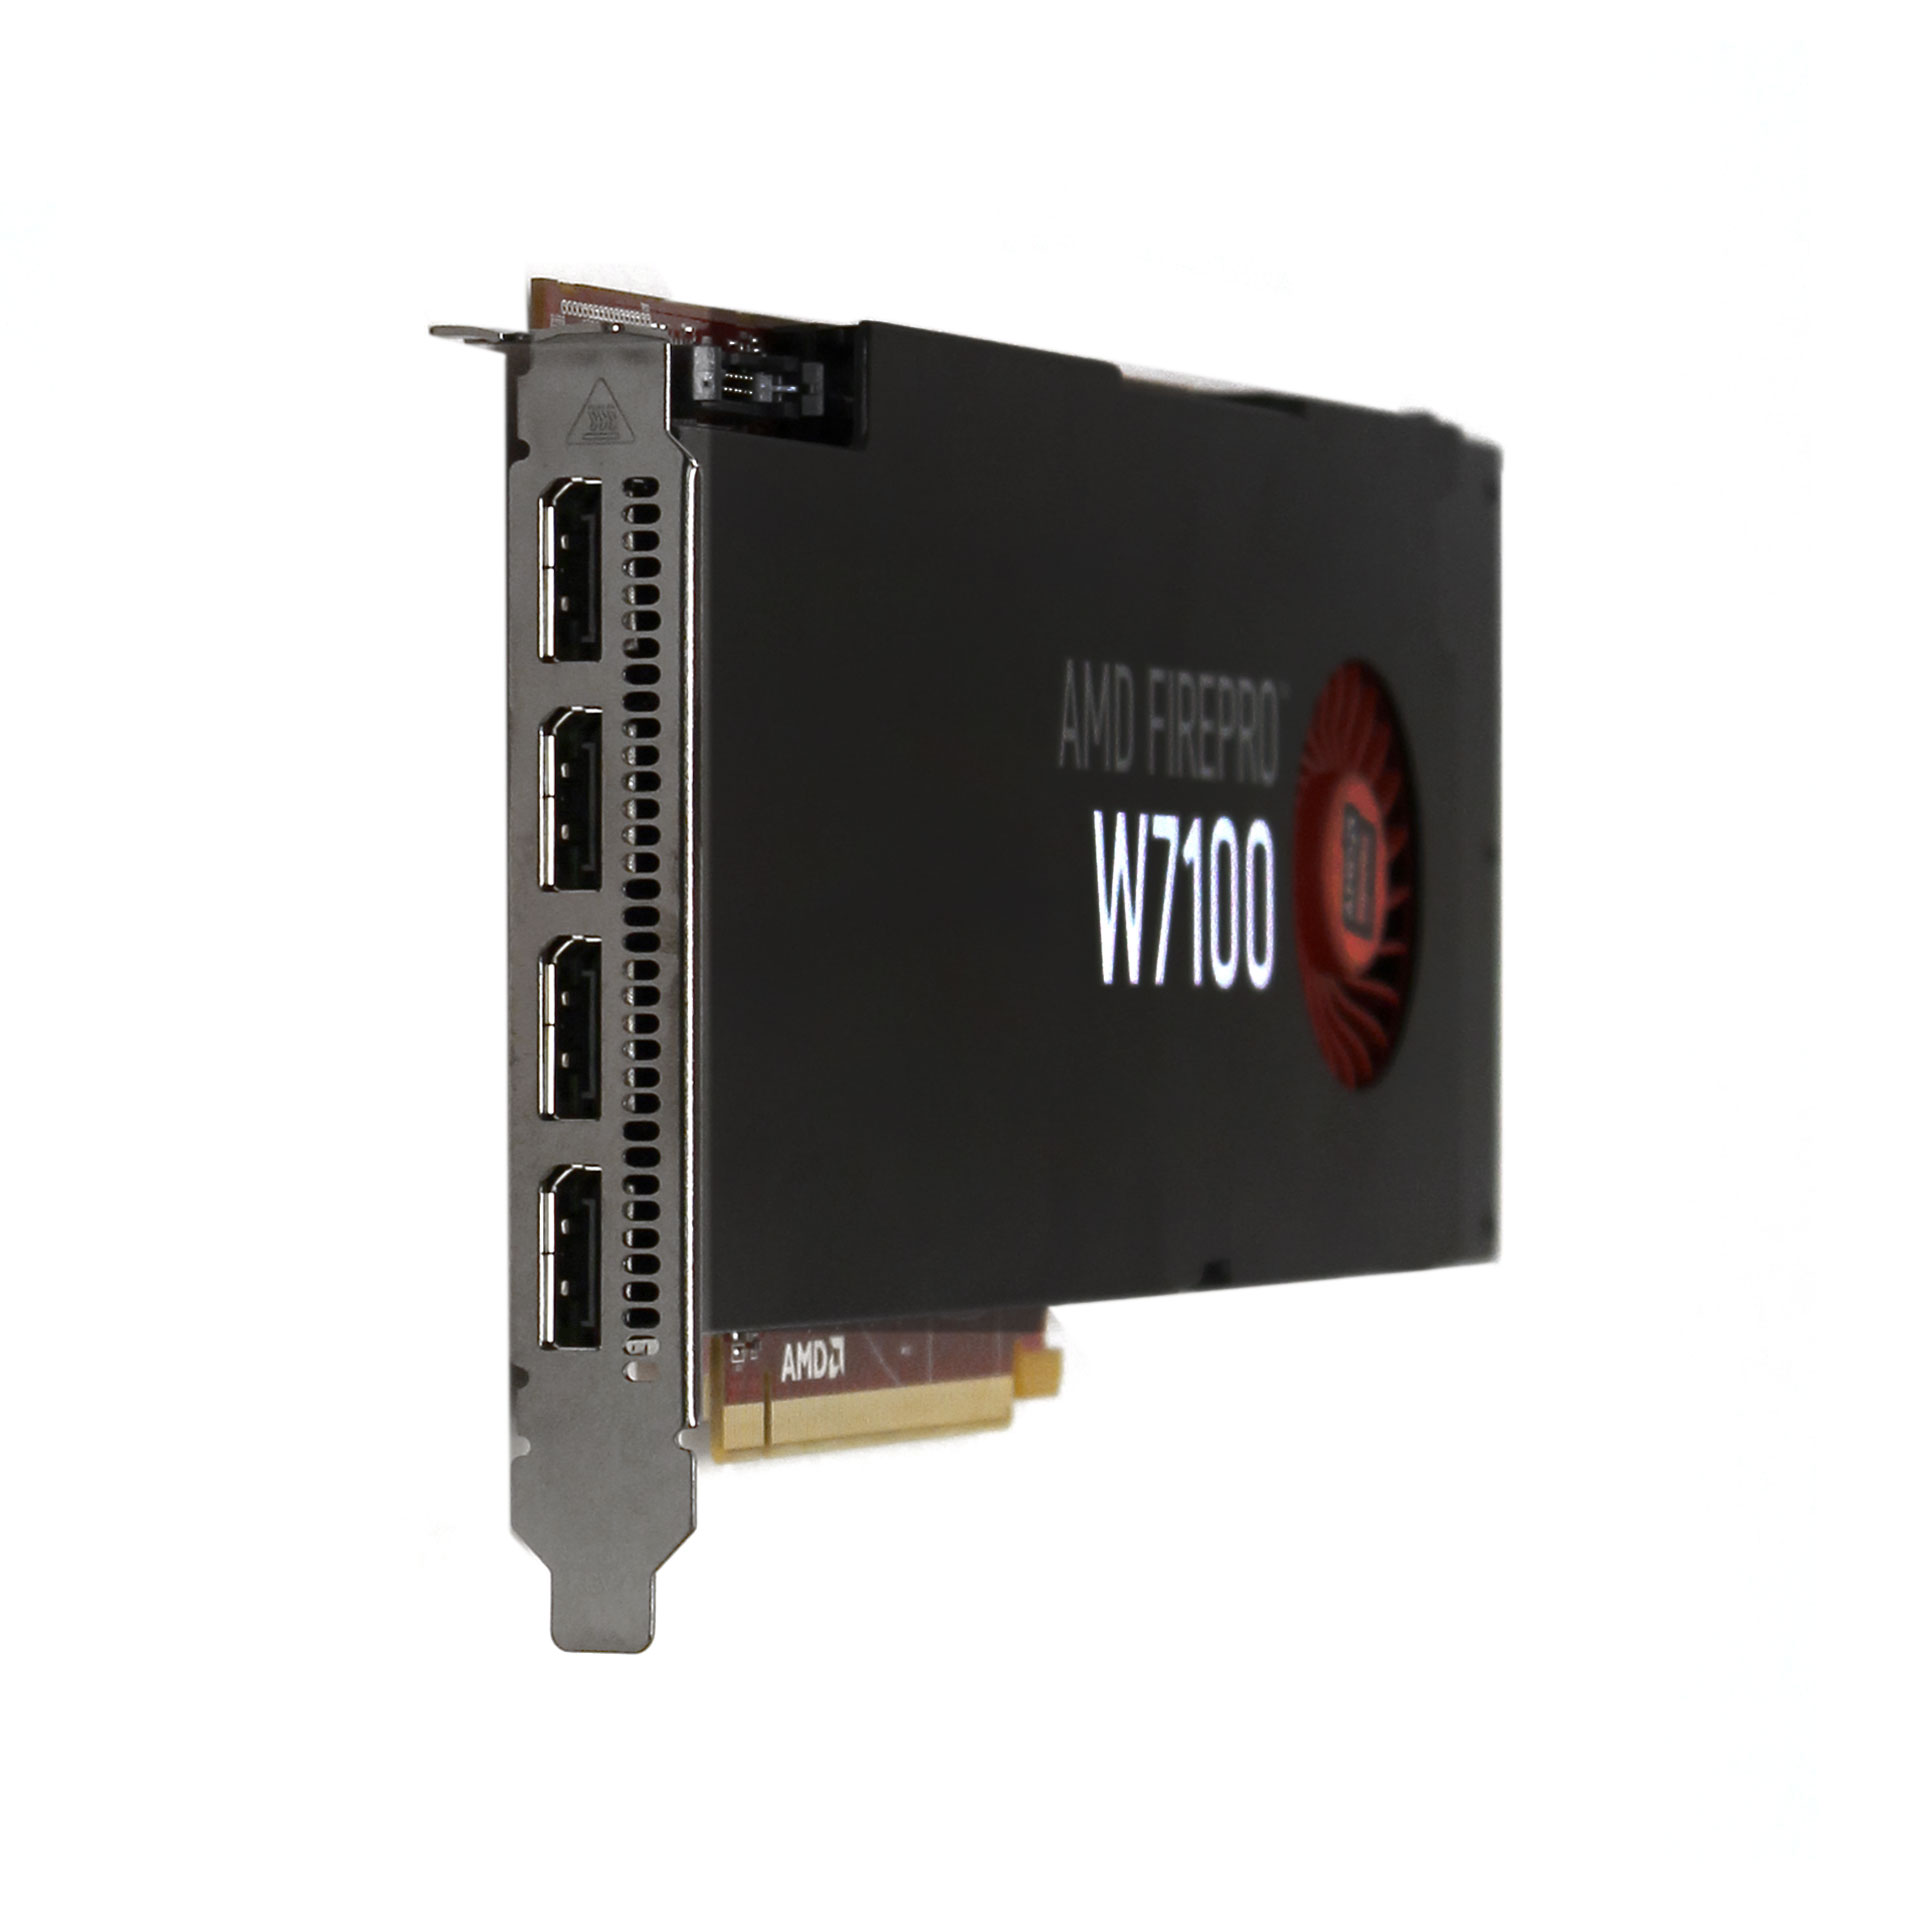 AMD FirePro W7100 8GB GDDR5 Video Card HP 803269-001 803279-001